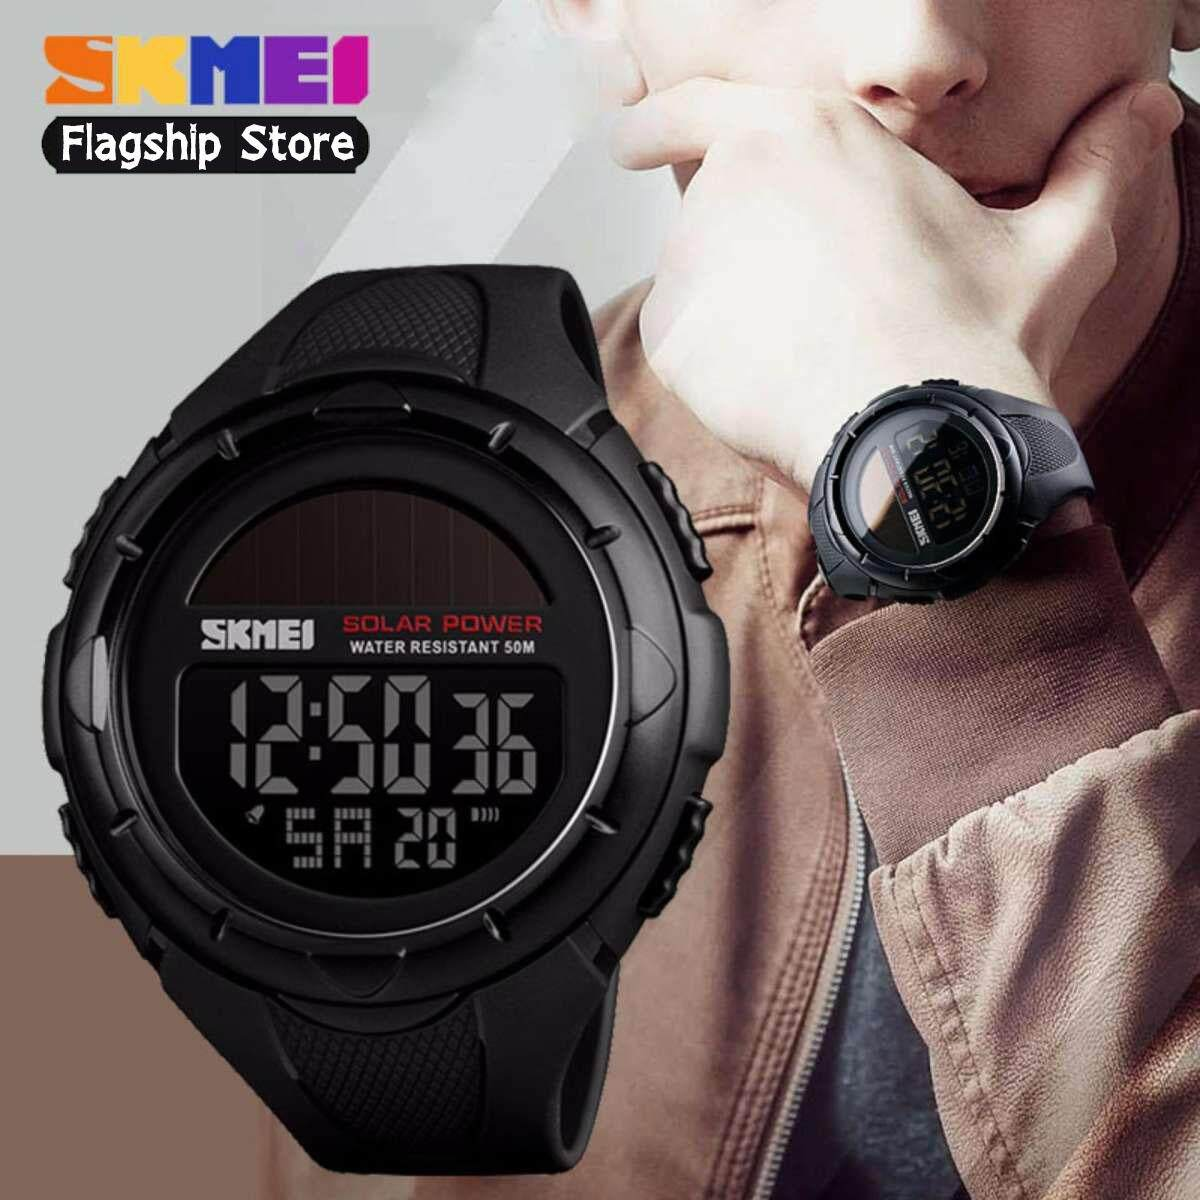 2019 Hot Sale Led Children Watch Students Outdoor Sports Electronic Bracelet Silicone Watch Led Relogio Feminino Relogio Feminin High Quality Children's Watches